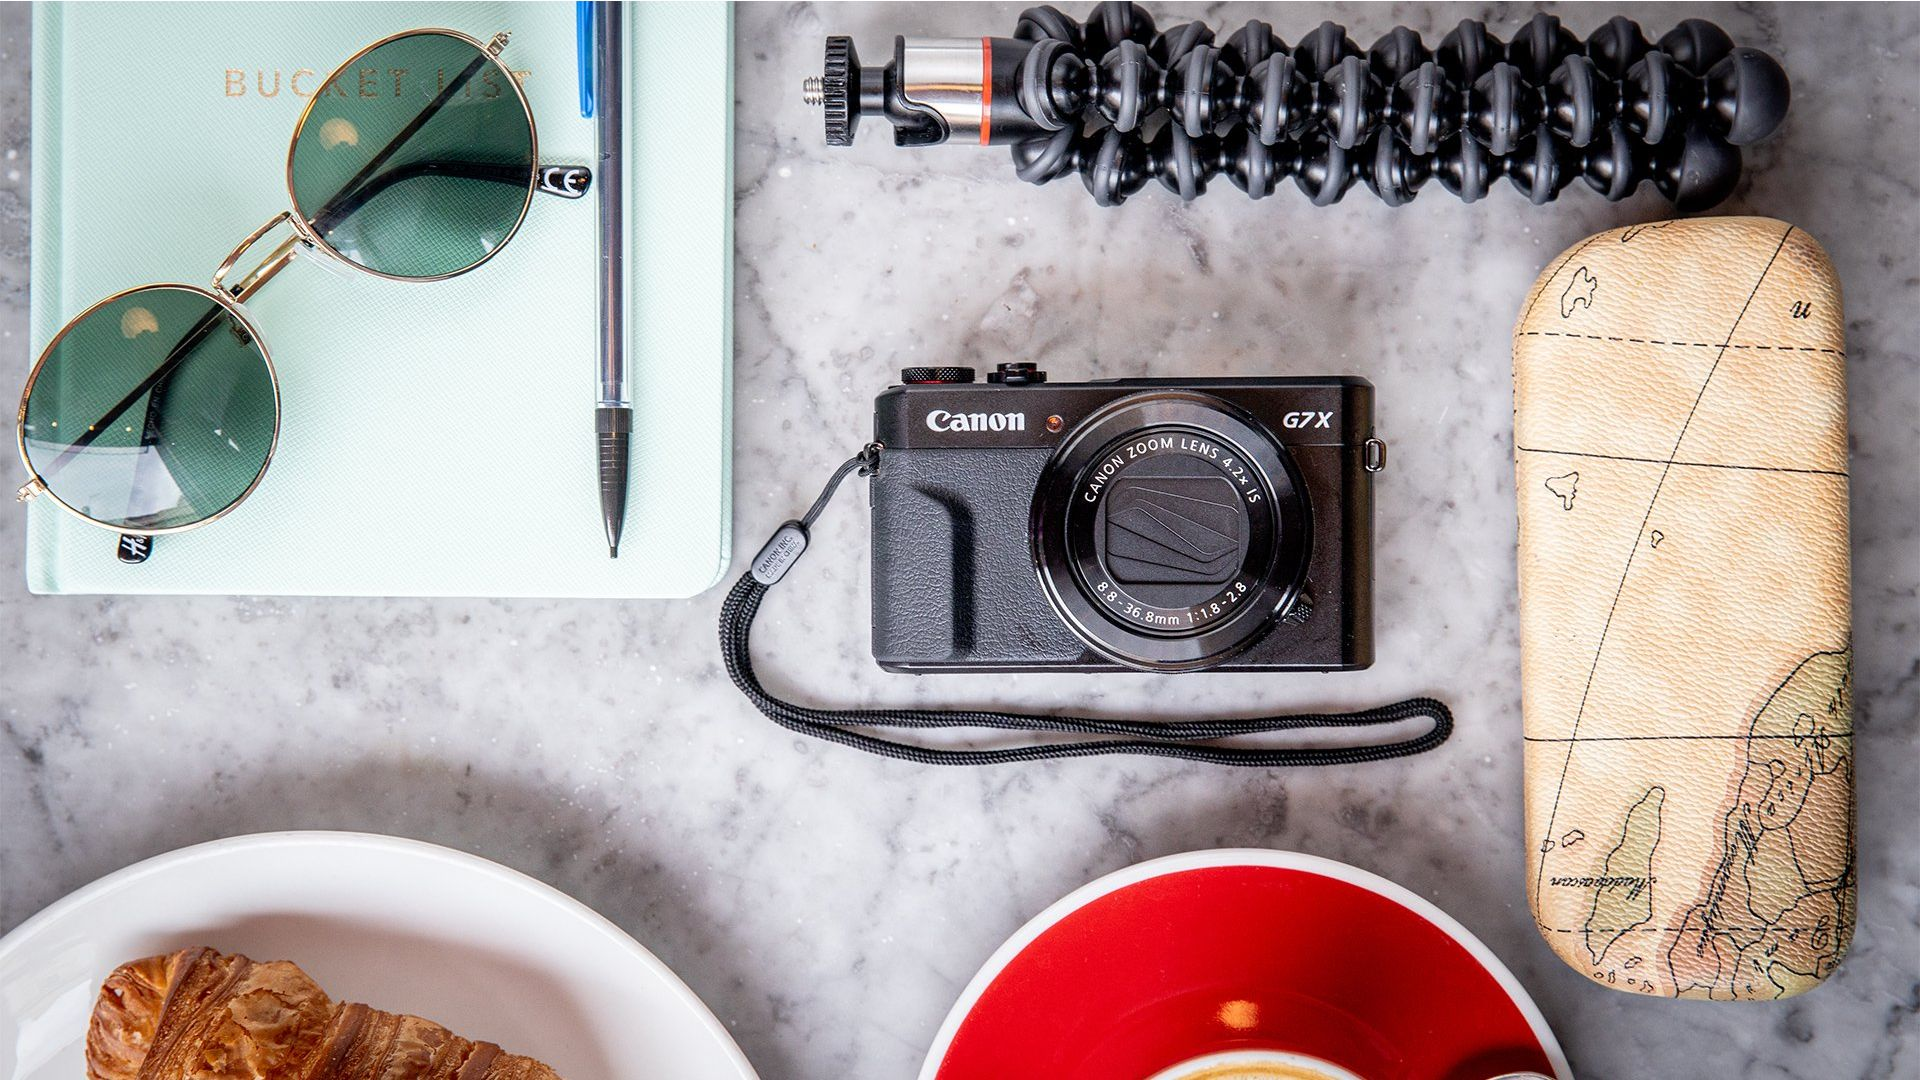 A flatlay of a vlogger's equipment including the Canon G7 X Mark II.